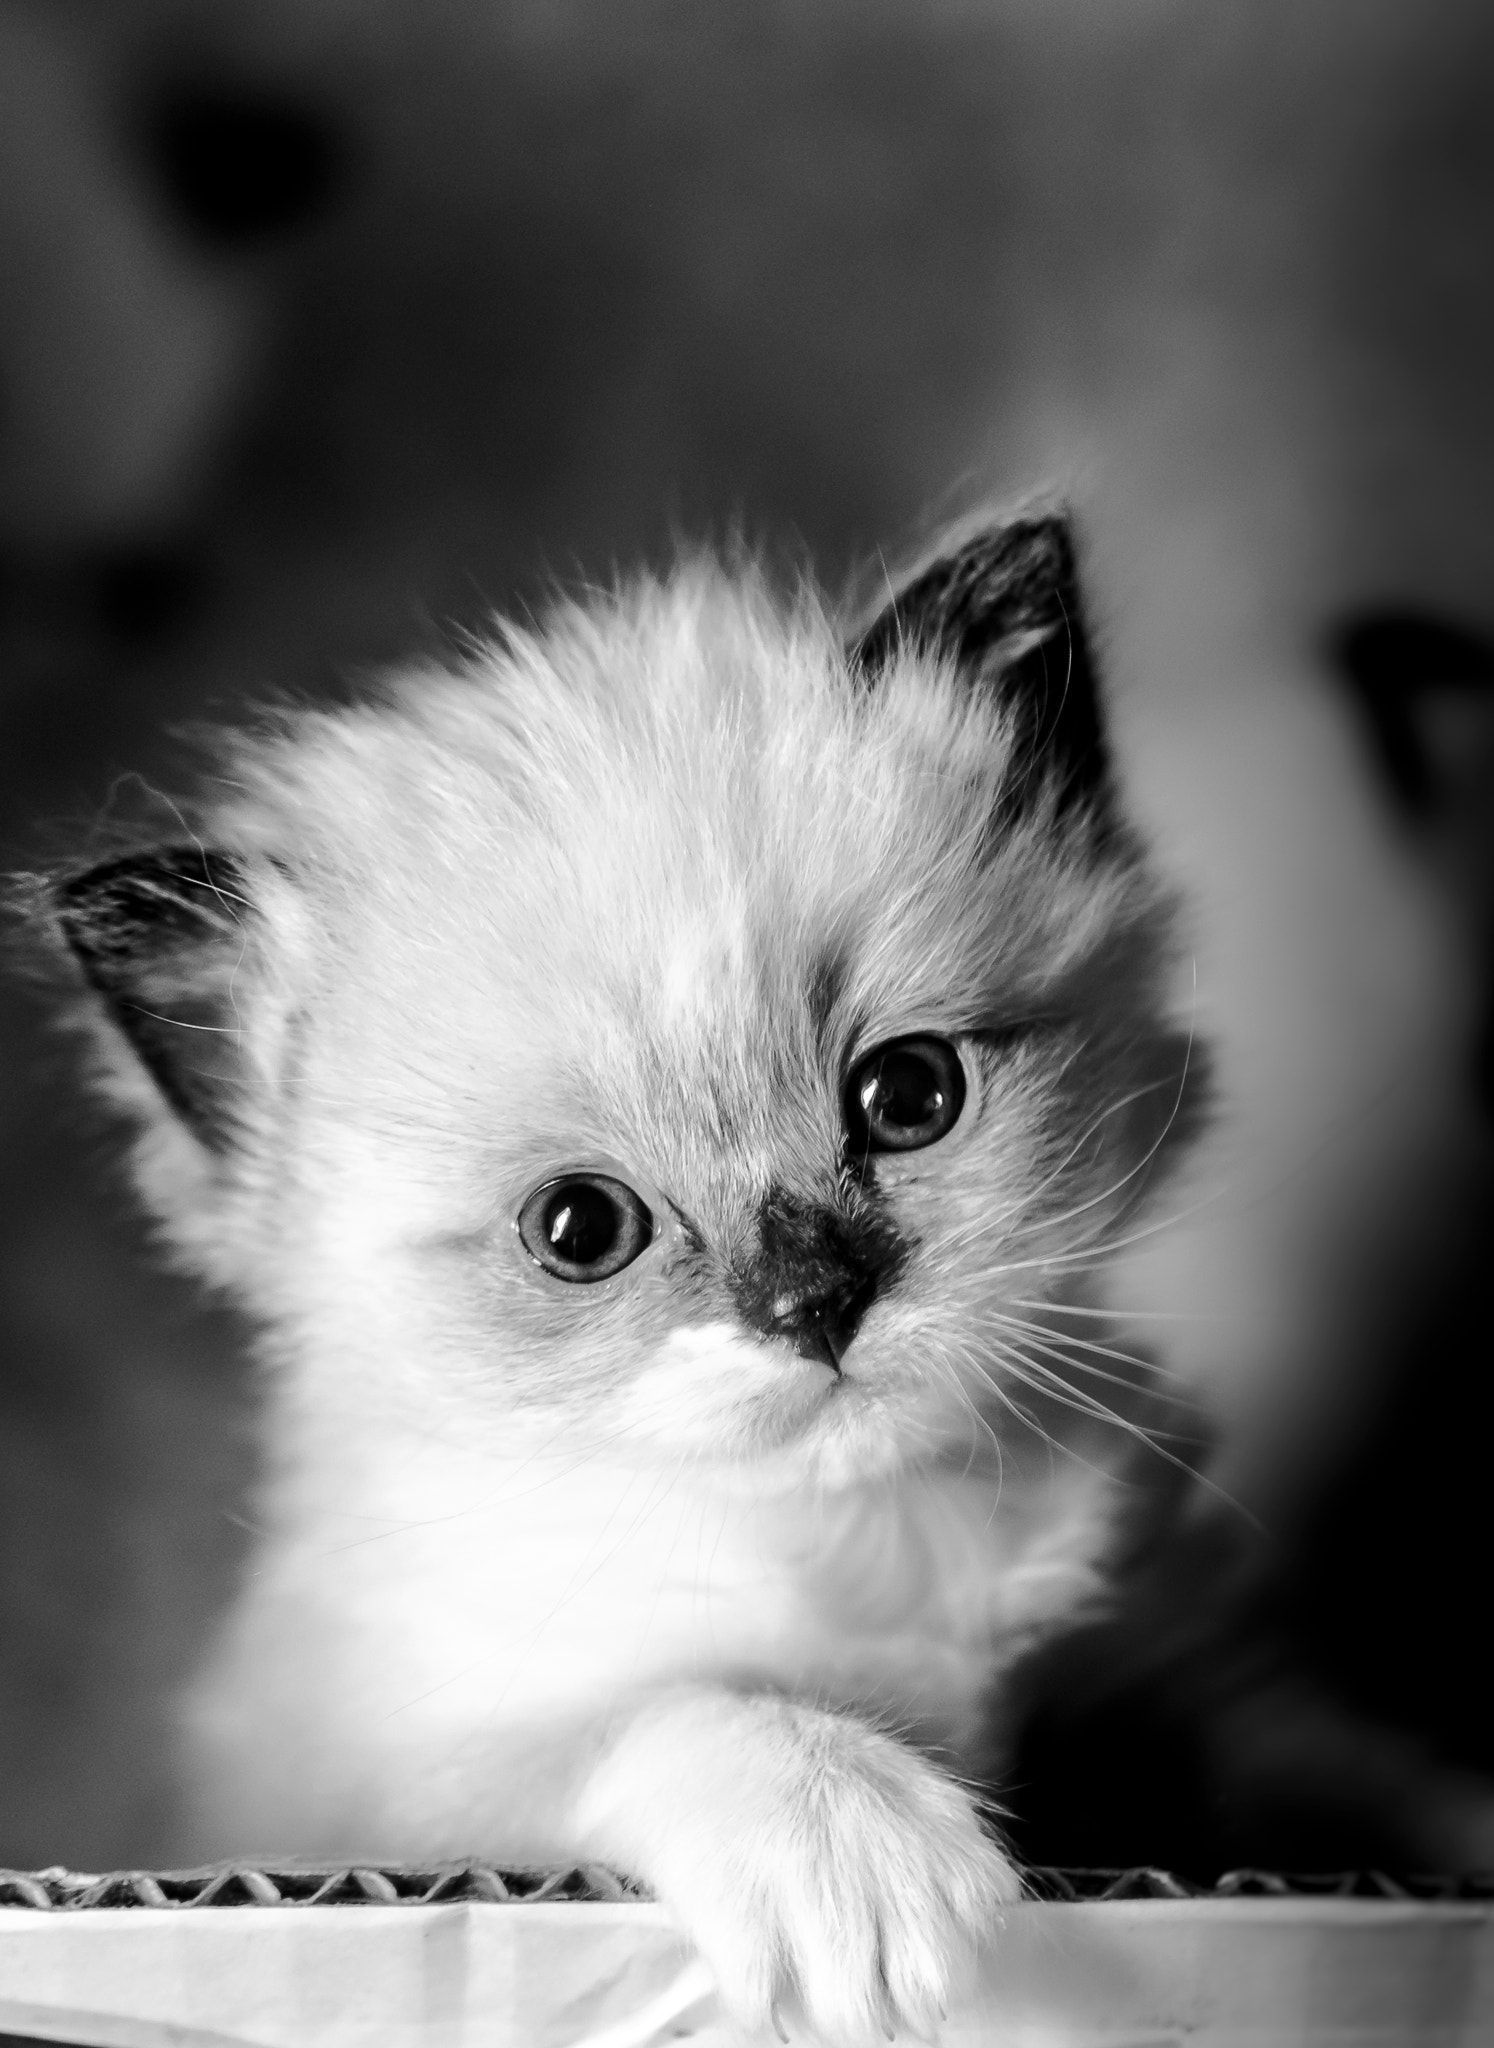 Kitten In Black And White A Rare Thing For Me To Shoot In Black